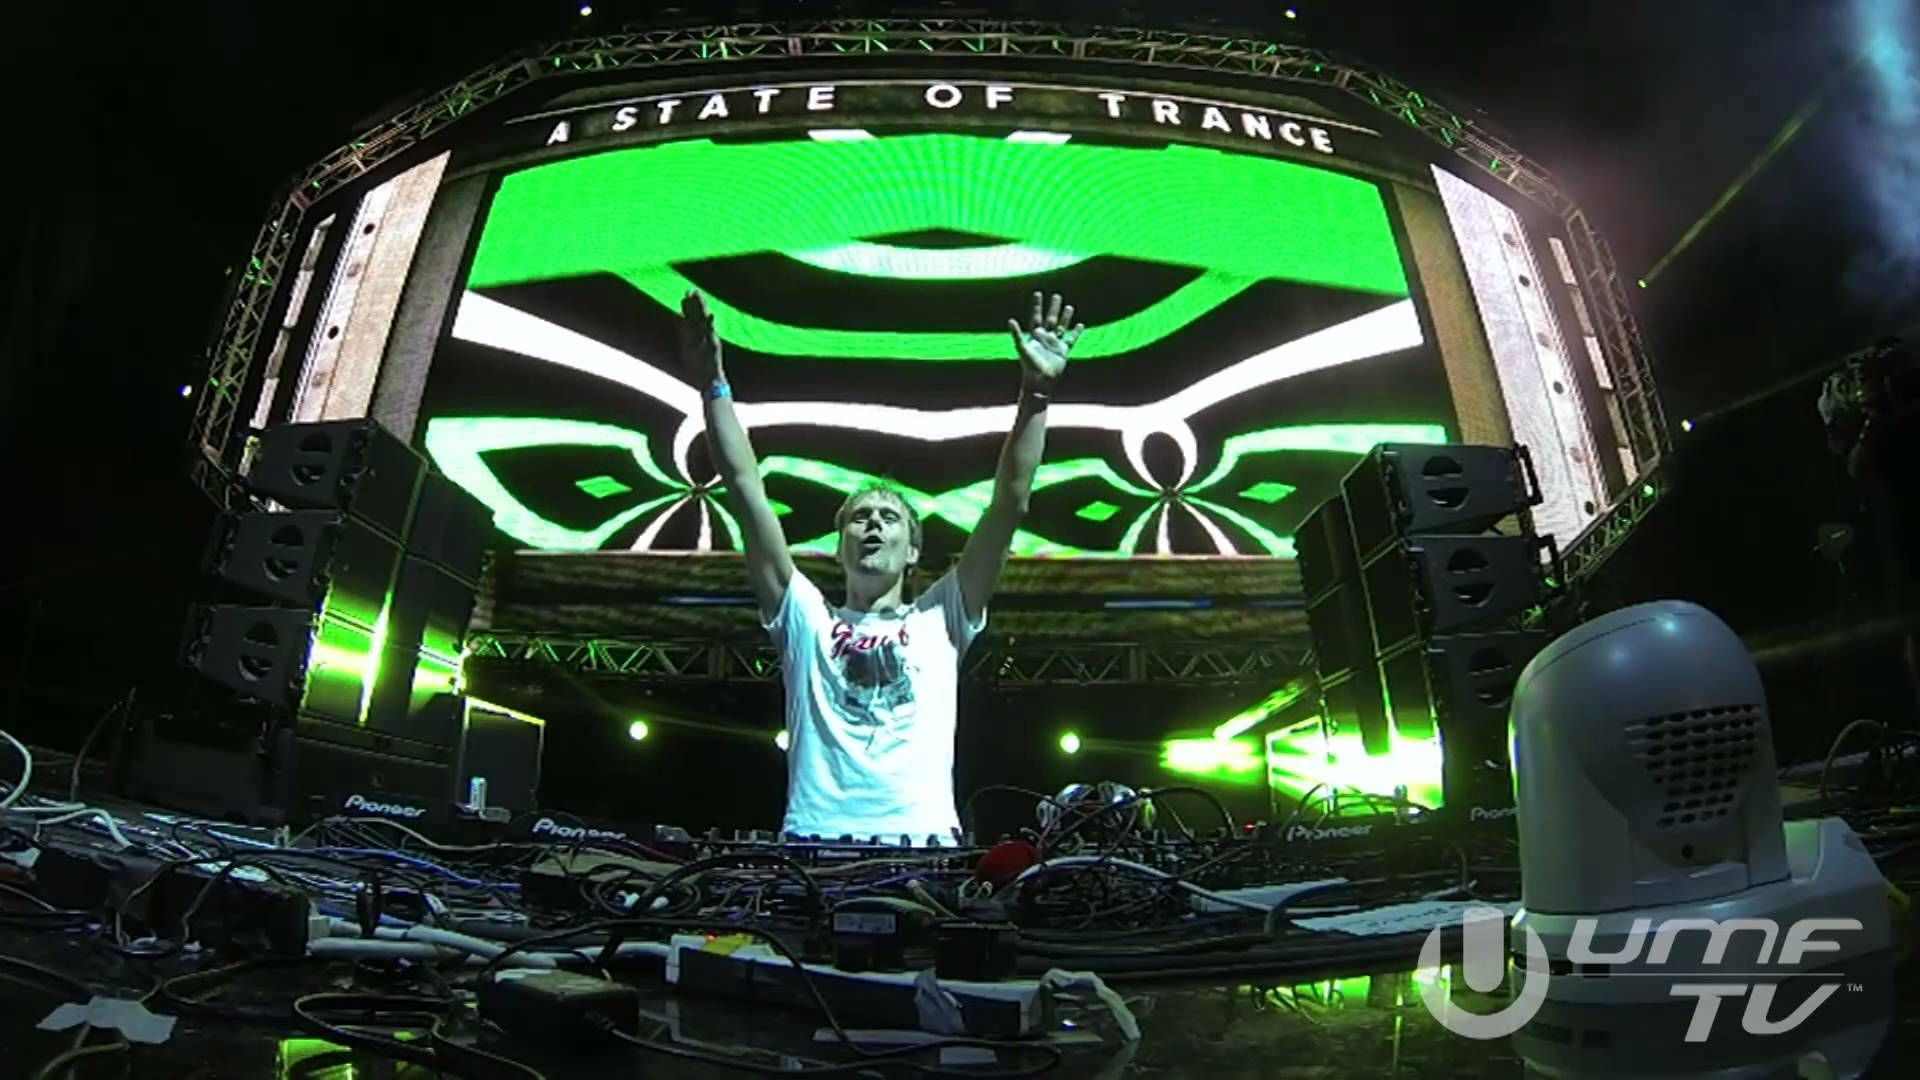 Armin Van Buuren Live At A State Of Trance 600 Miami Full Hd